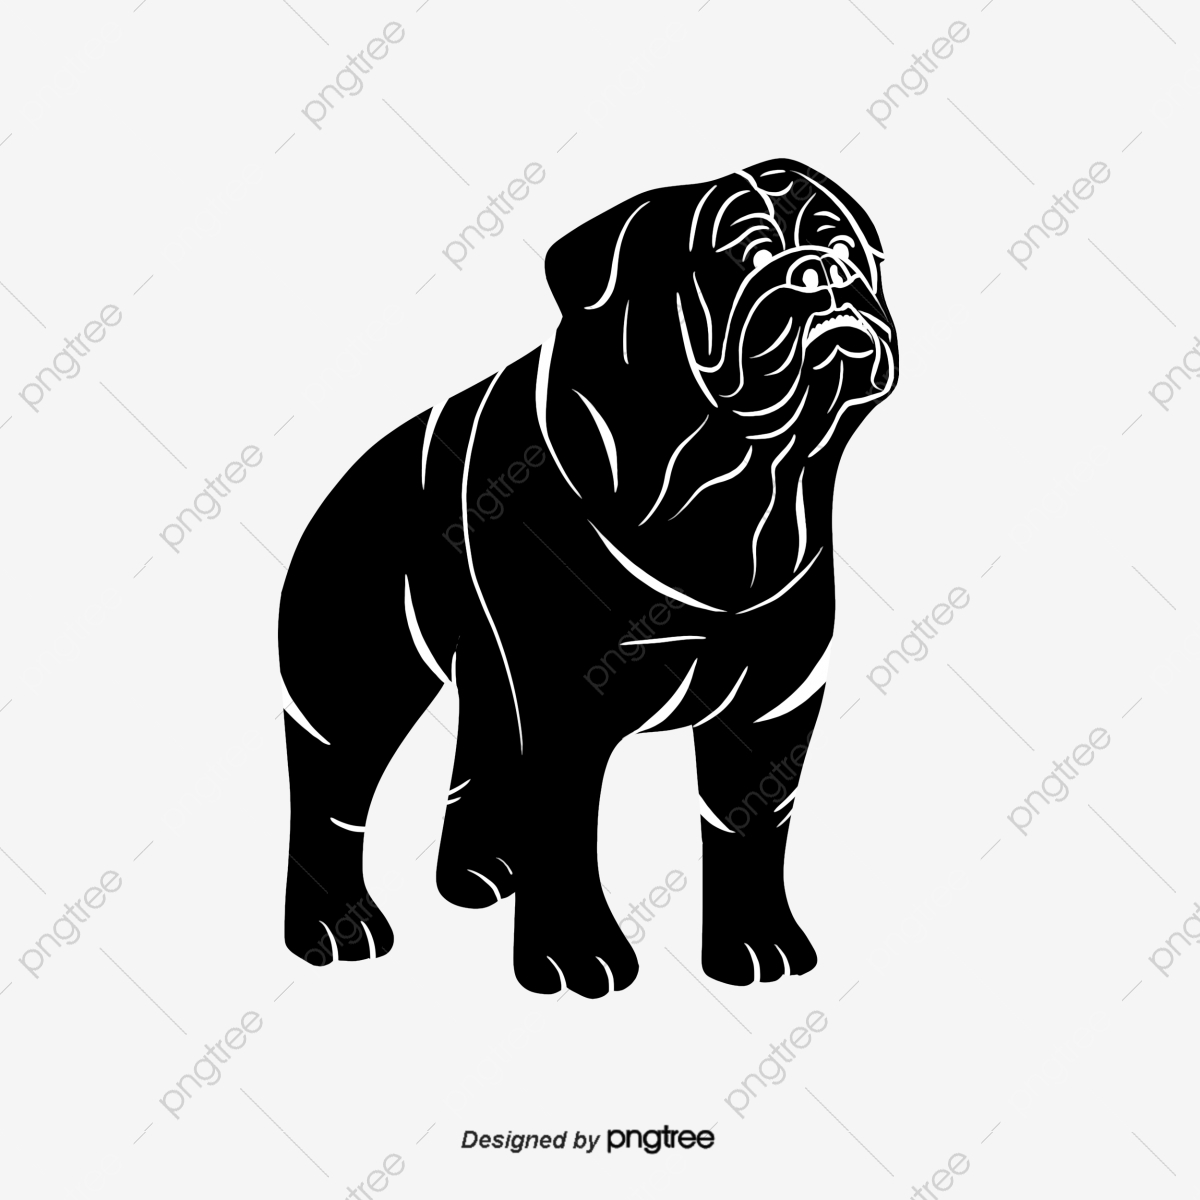 hight resolution of commercial use resource upgrade to premium plan and get license authorization upgradenow bulldog bulldog clipart